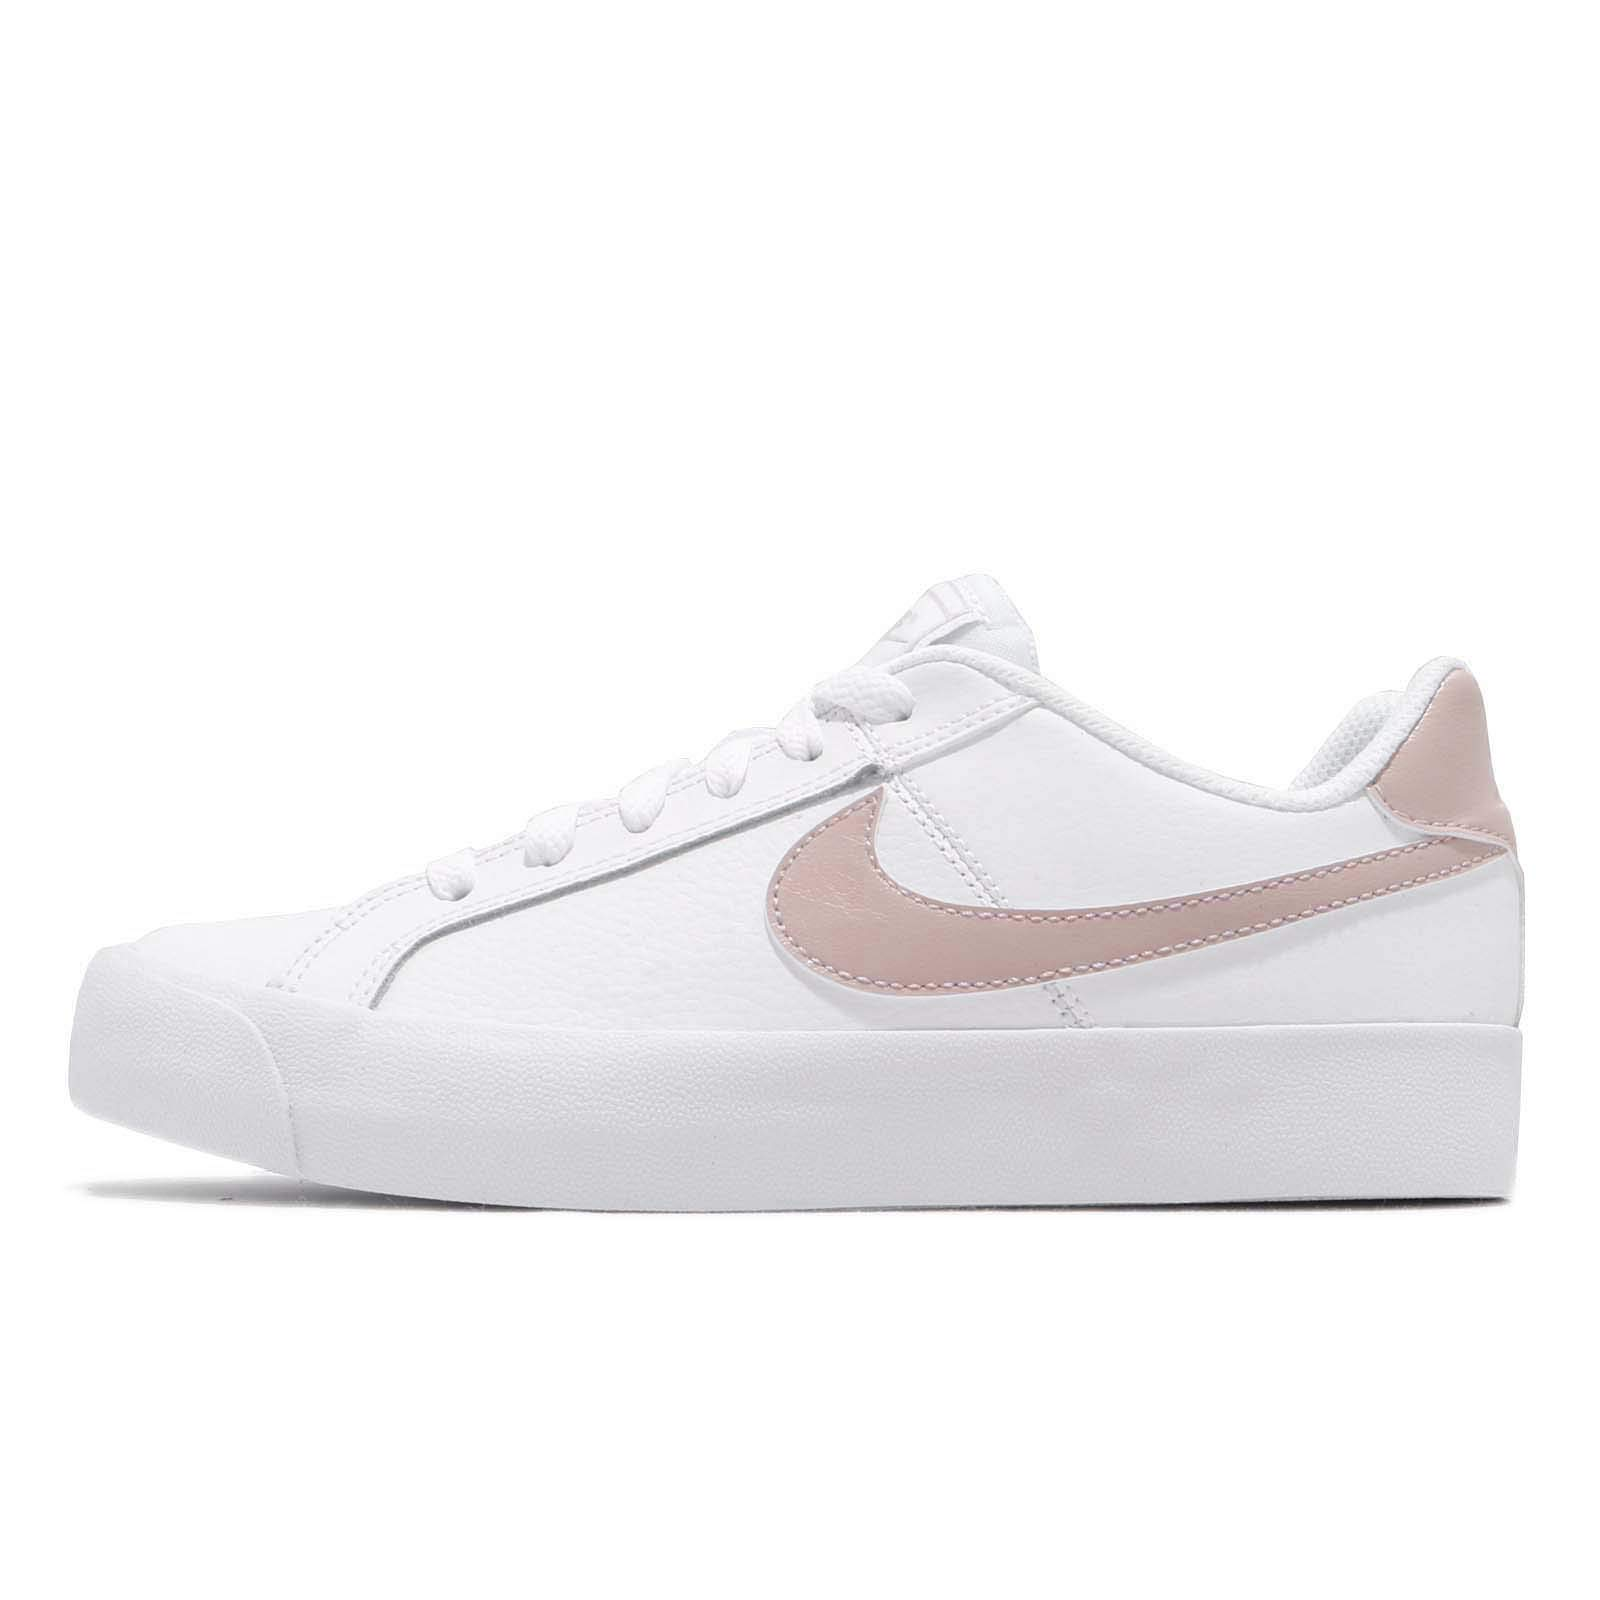 Galleon - NIKE Womens Court Royale AC White Particle Rose Size 9 ... 24742ccb84f7